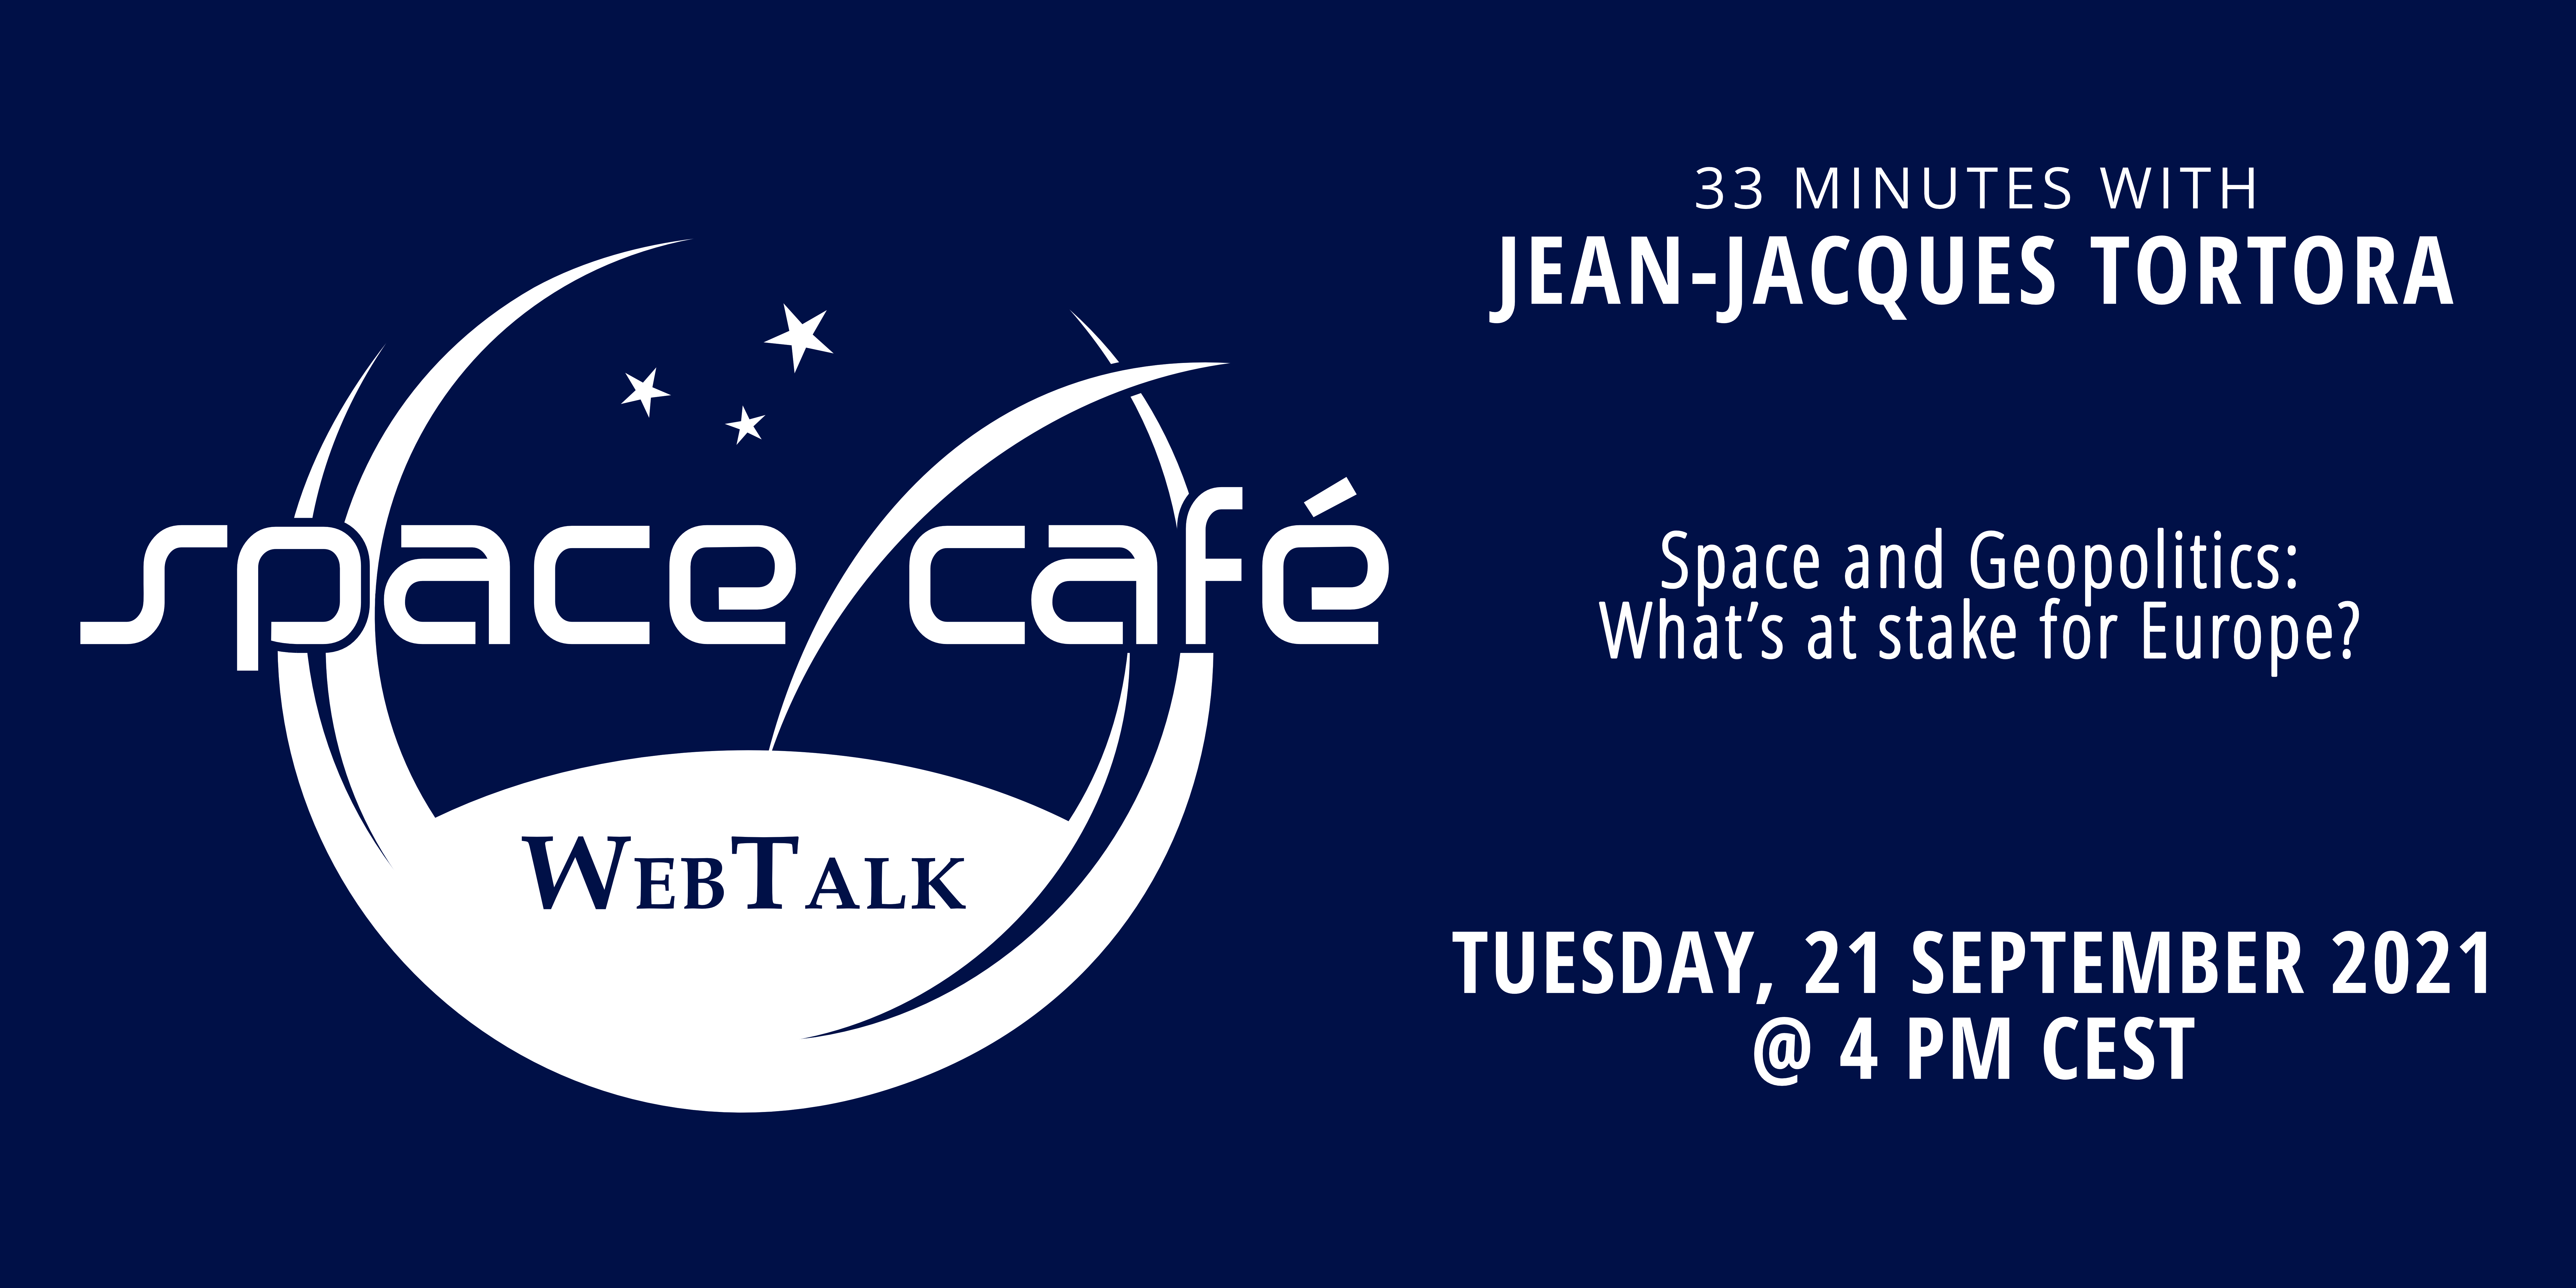 """Register Today For Our Space Café """"33 minutes with Jean-Jacques Tortora"""" On 21 September 2021"""